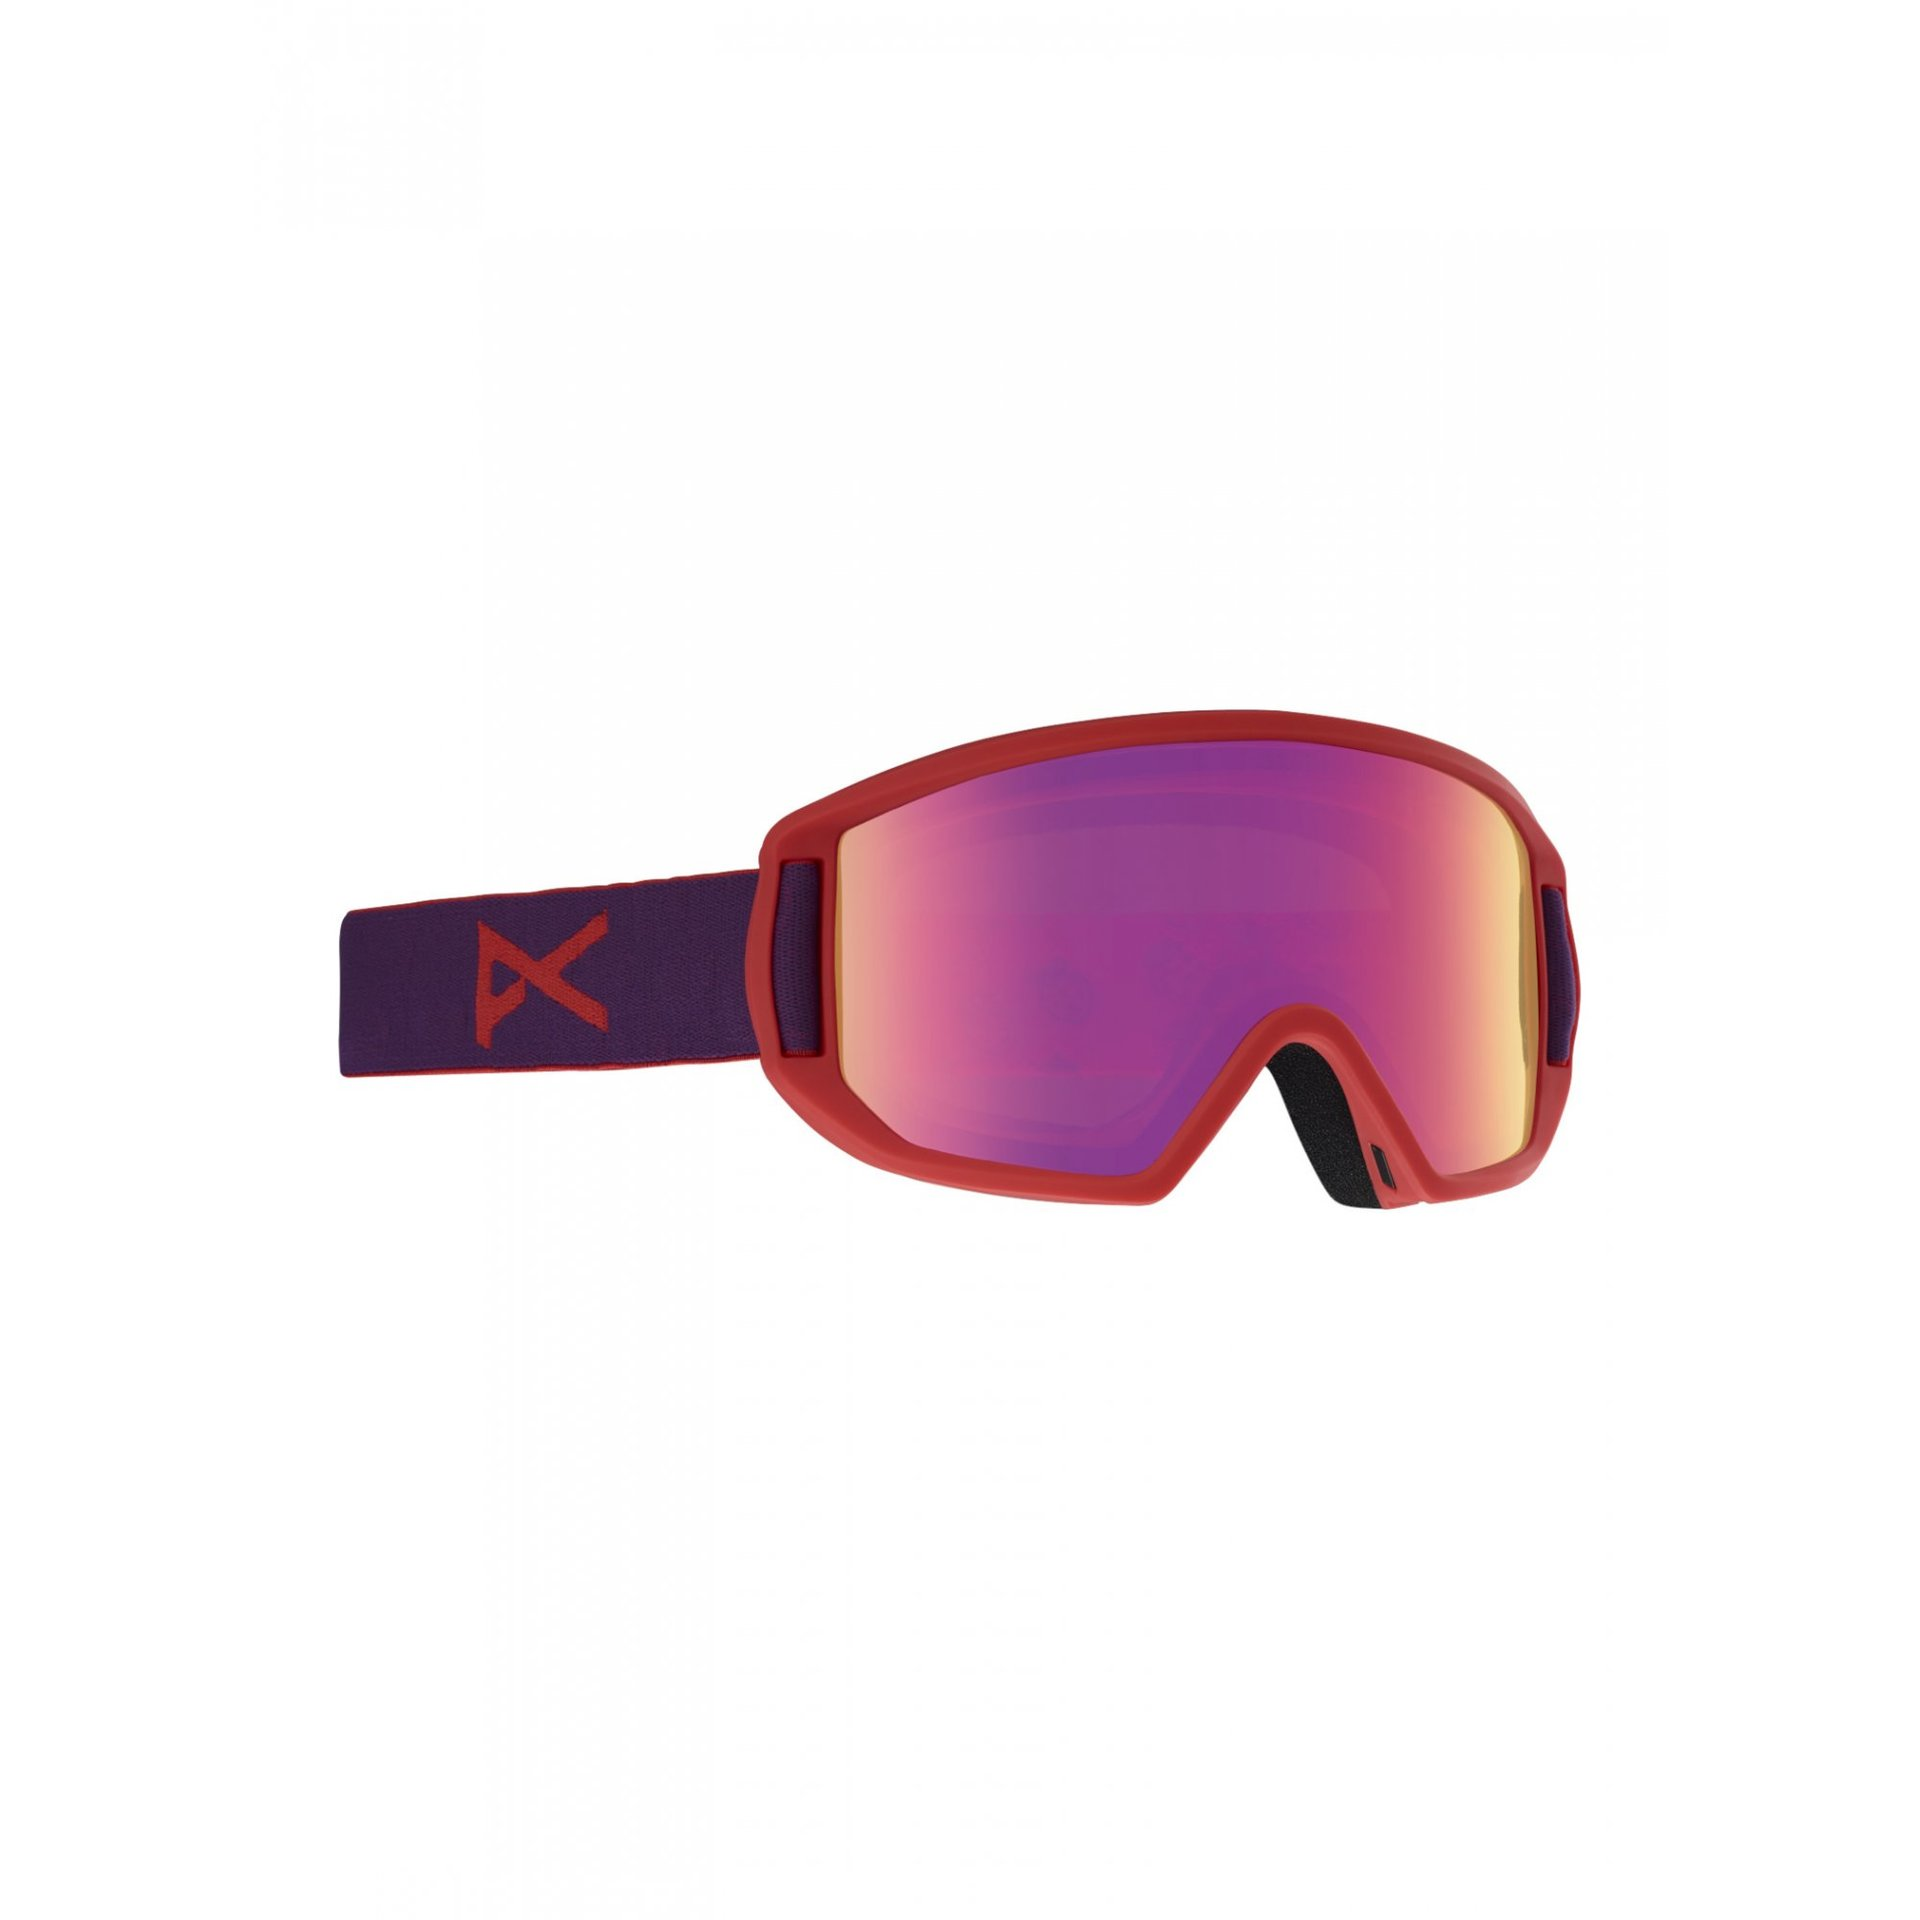 GOGLE ANON RELAPSE JR MFI PURPLE|PINK AMBER 1